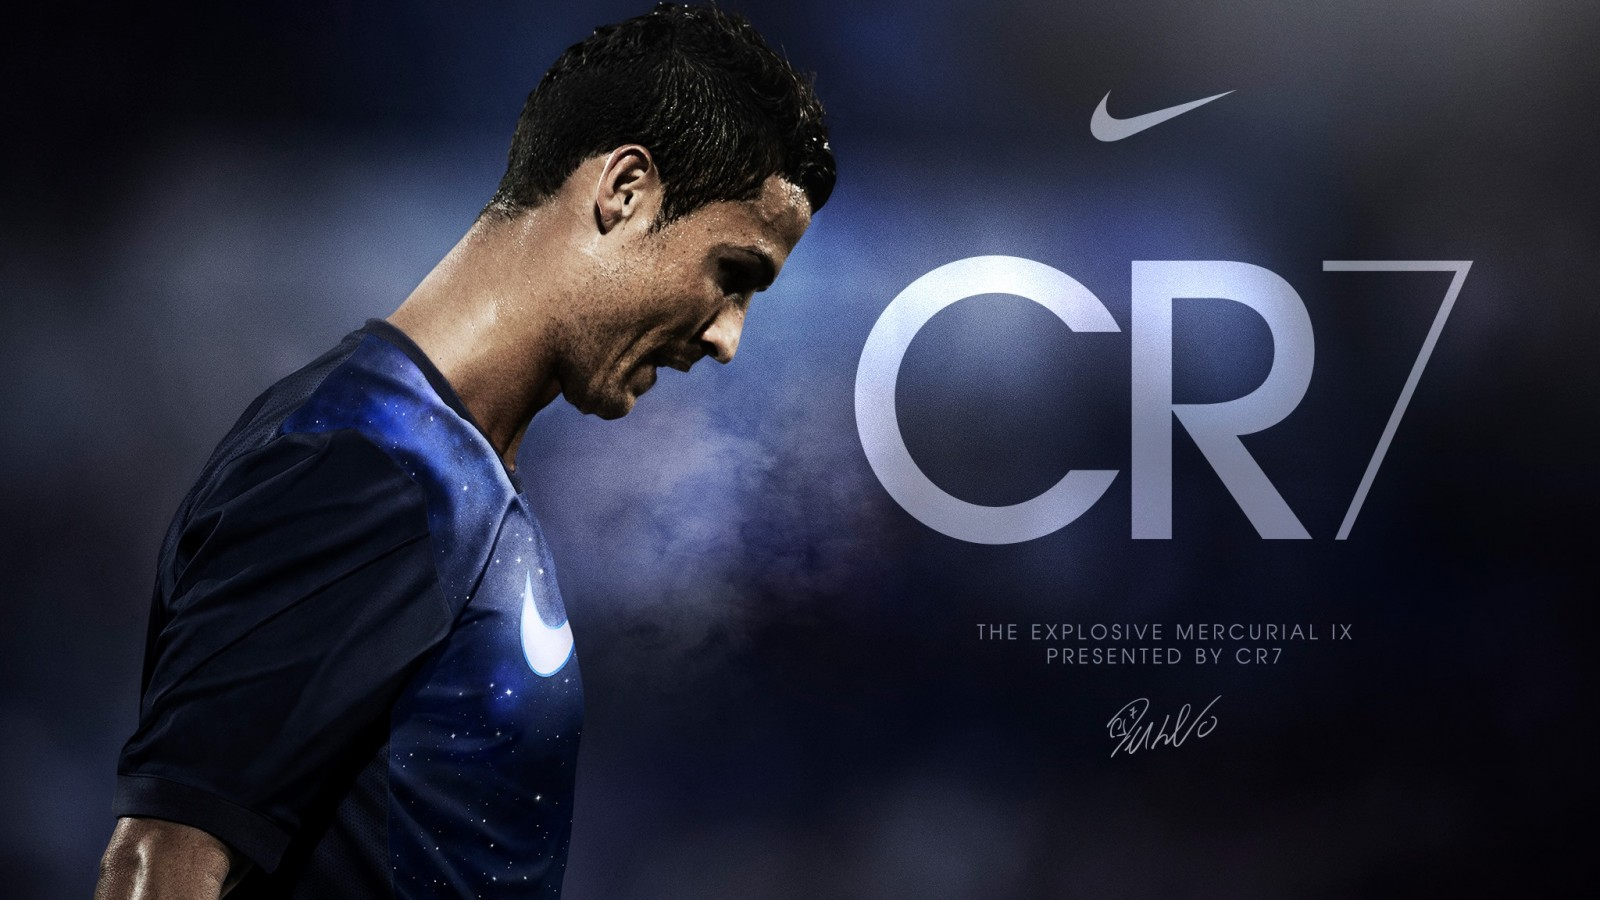 Cristiano ronaldo hd wallpapers cristiano ronaldo hd wallpapers 2015 voltagebd Images